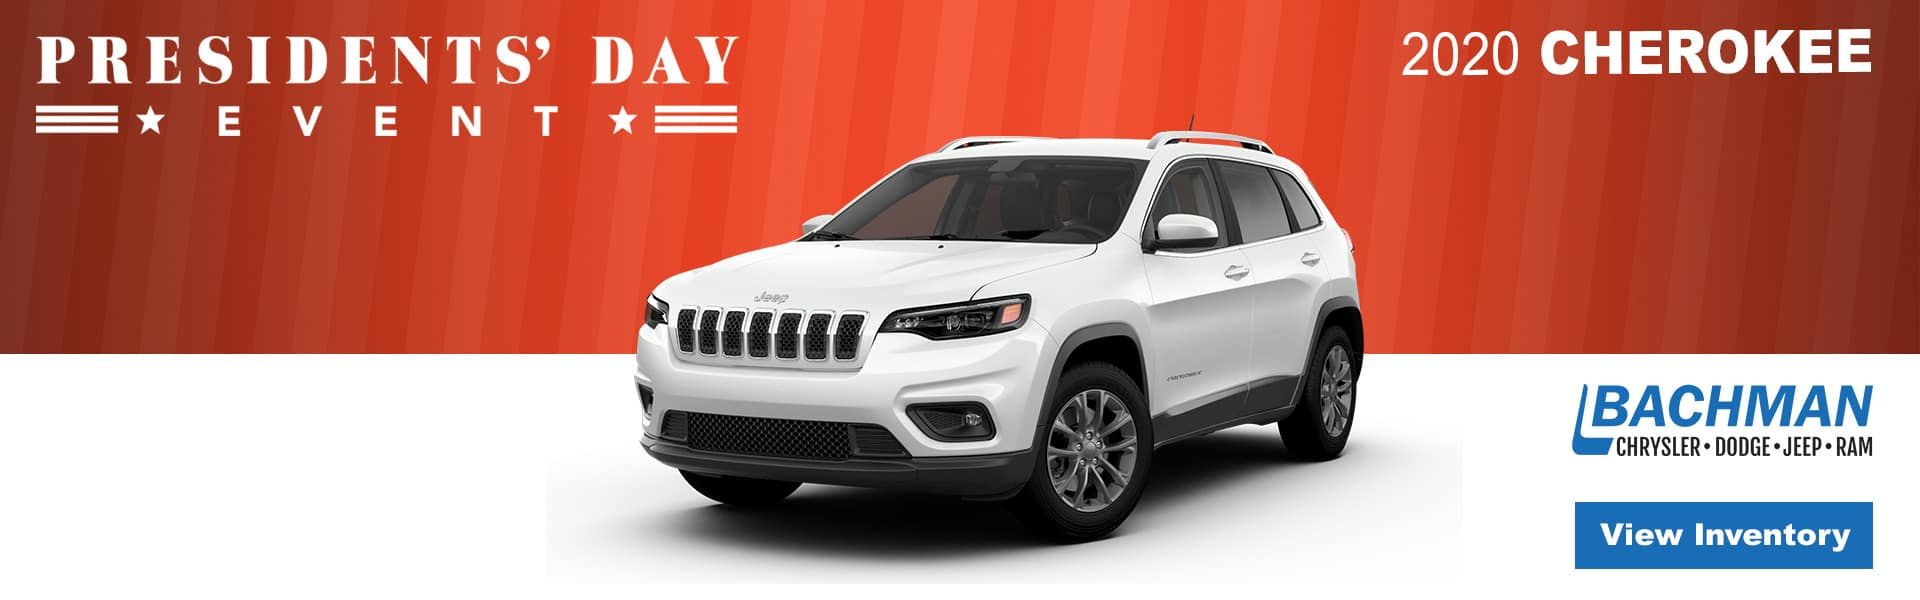 Presidents Day Sales Event Cherokee